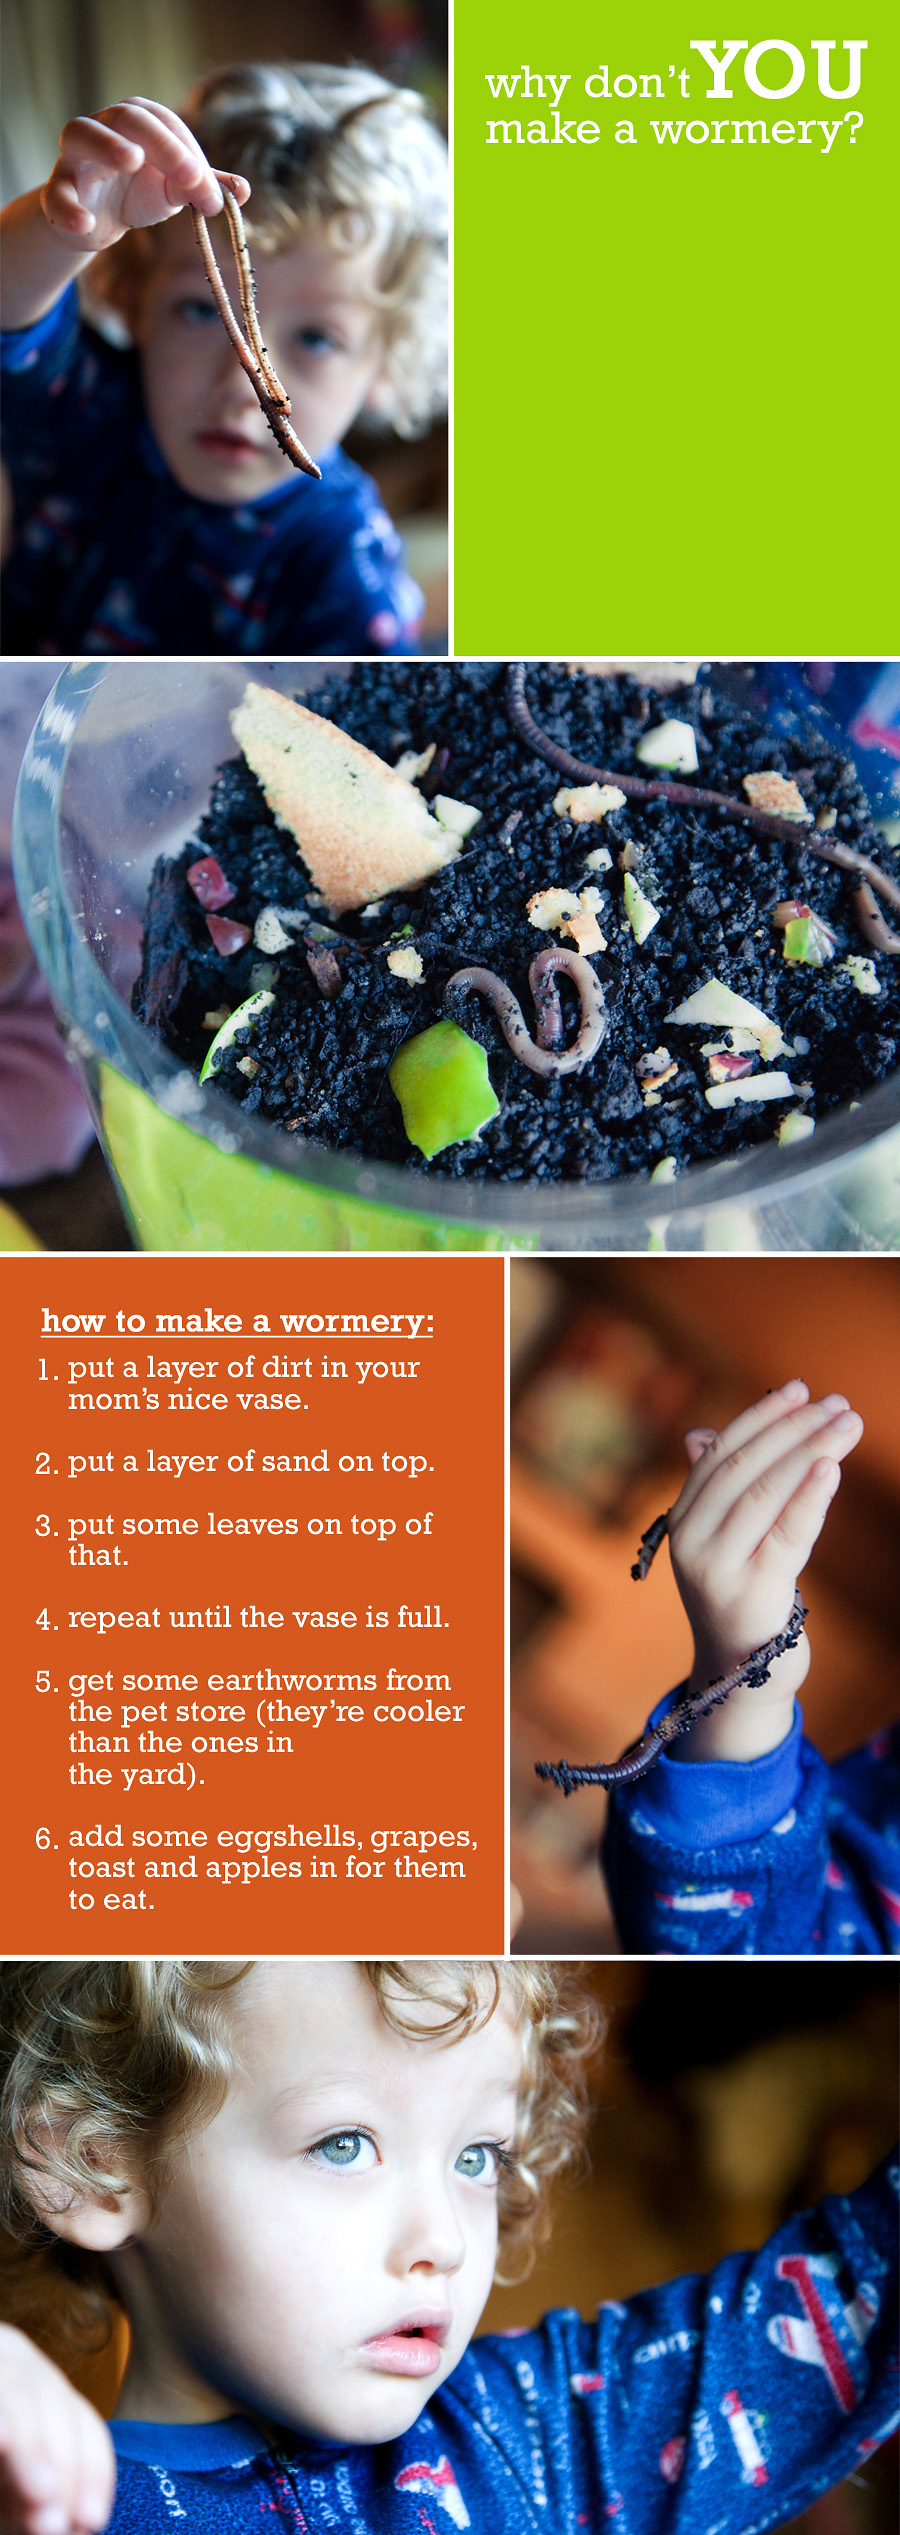 How-To-Make-a-womery